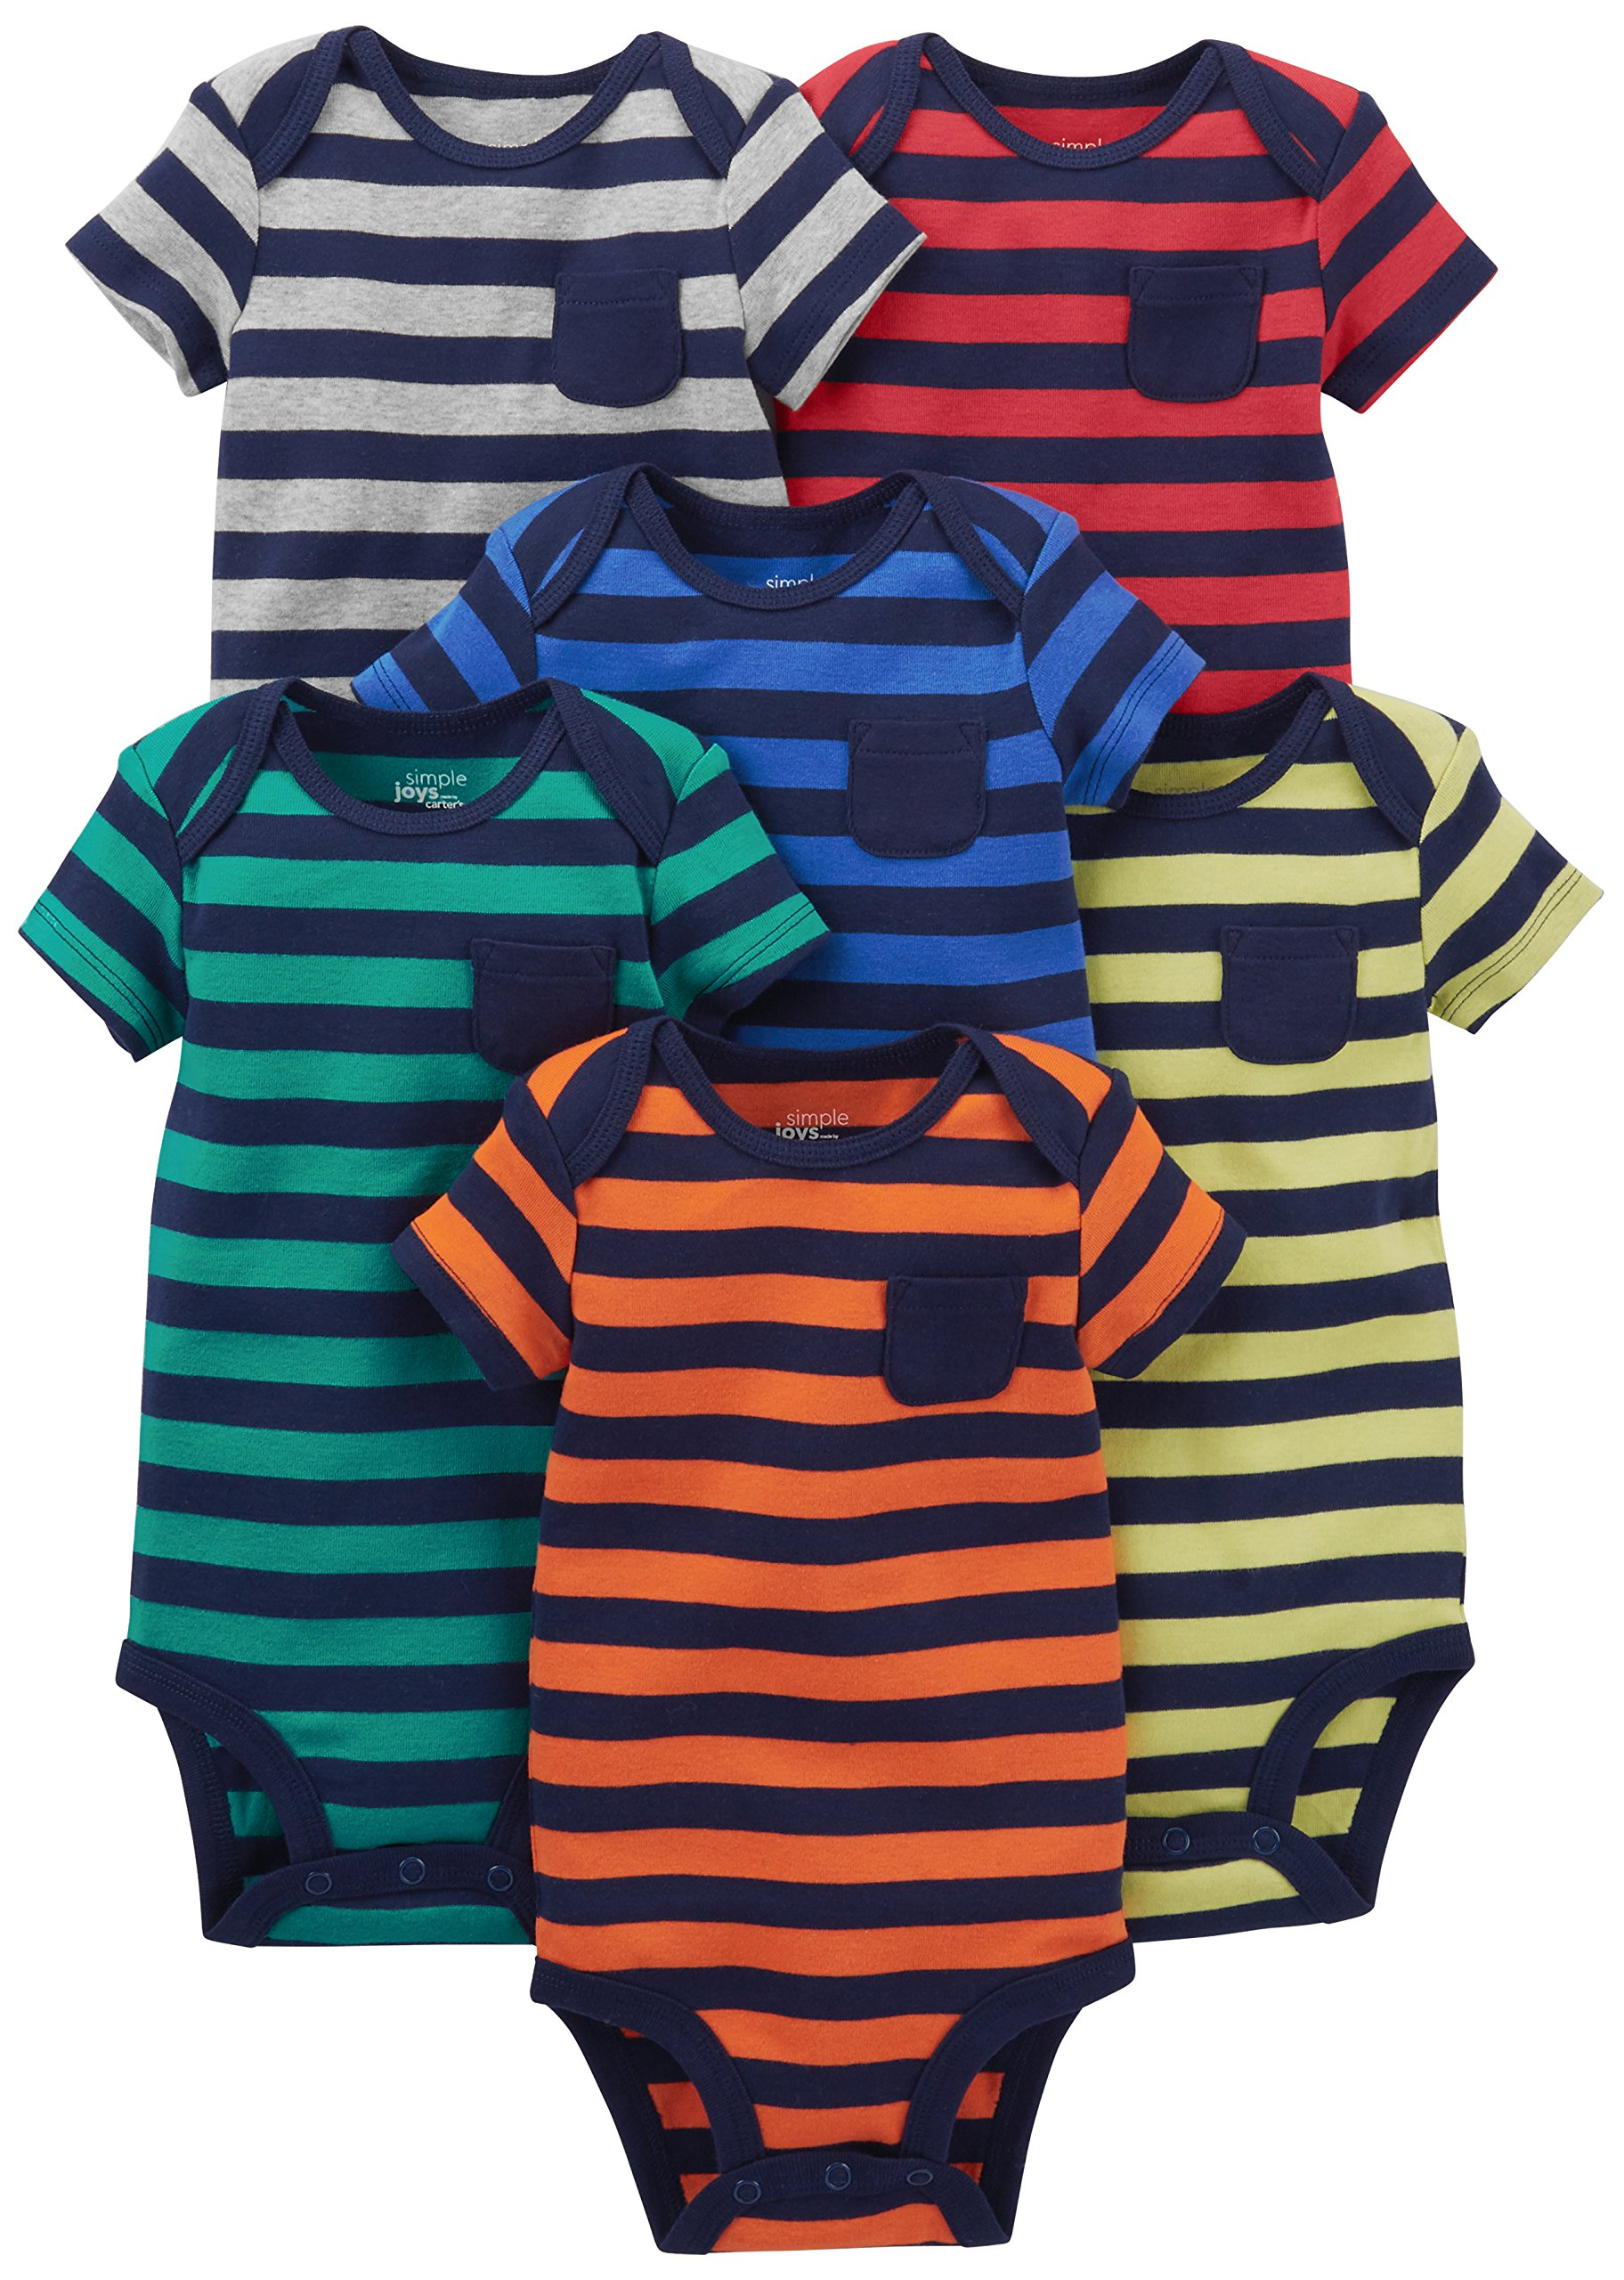 Simple Joys by Carter's Baby Boys' 6-Pack Short-Sleeve Bodysuit, Stripes, 3-6 Months